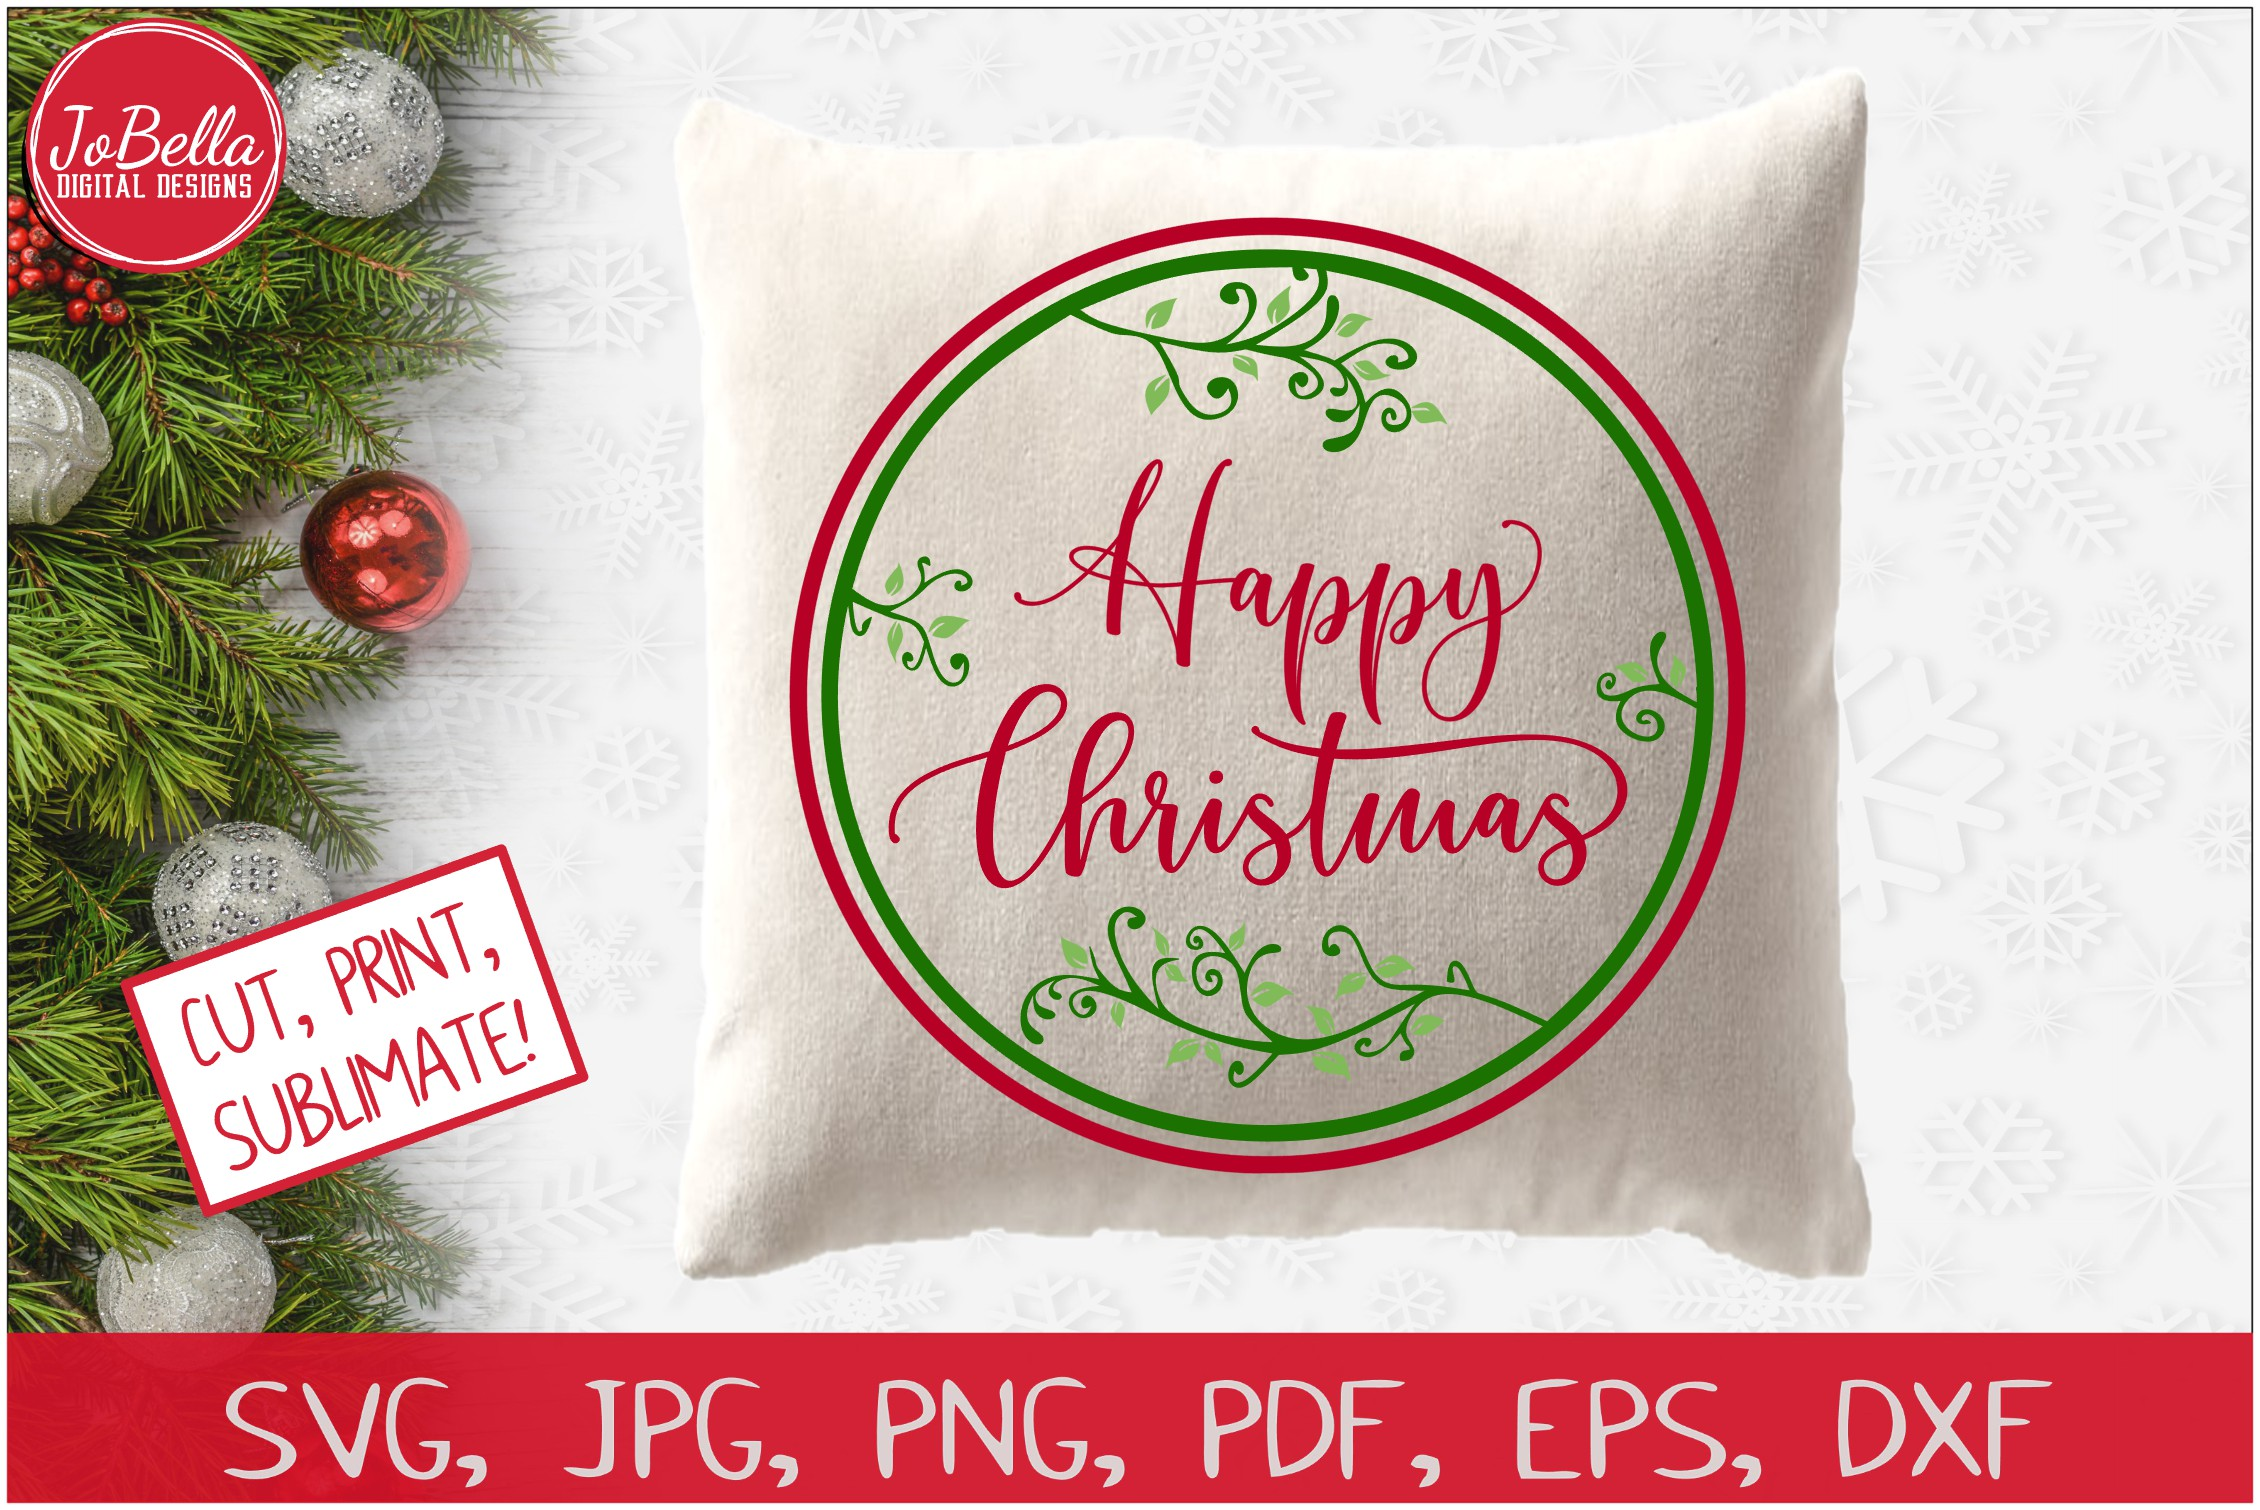 Happy Christmas SVG Printable & Sublimation PNG example image 2